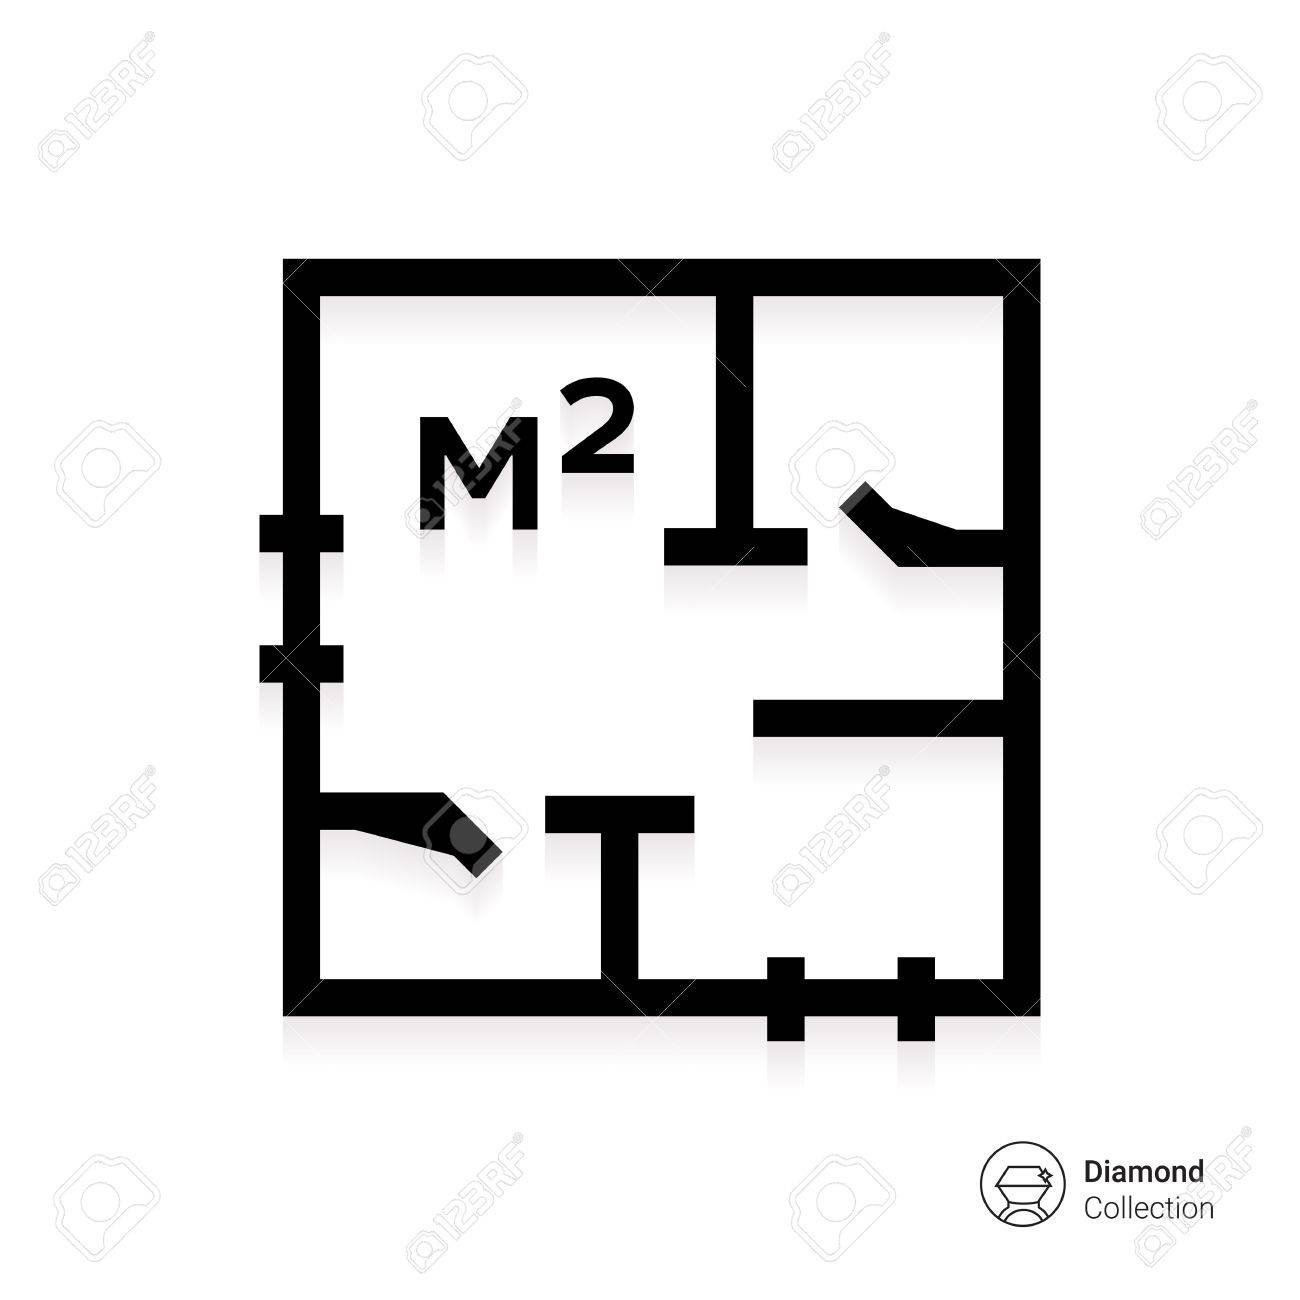 Metre squared symbol gallery symbol and sign ideas meter squared symbol choice image symbol and sign ideas m squared symbol image collections symbol and biocorpaavc